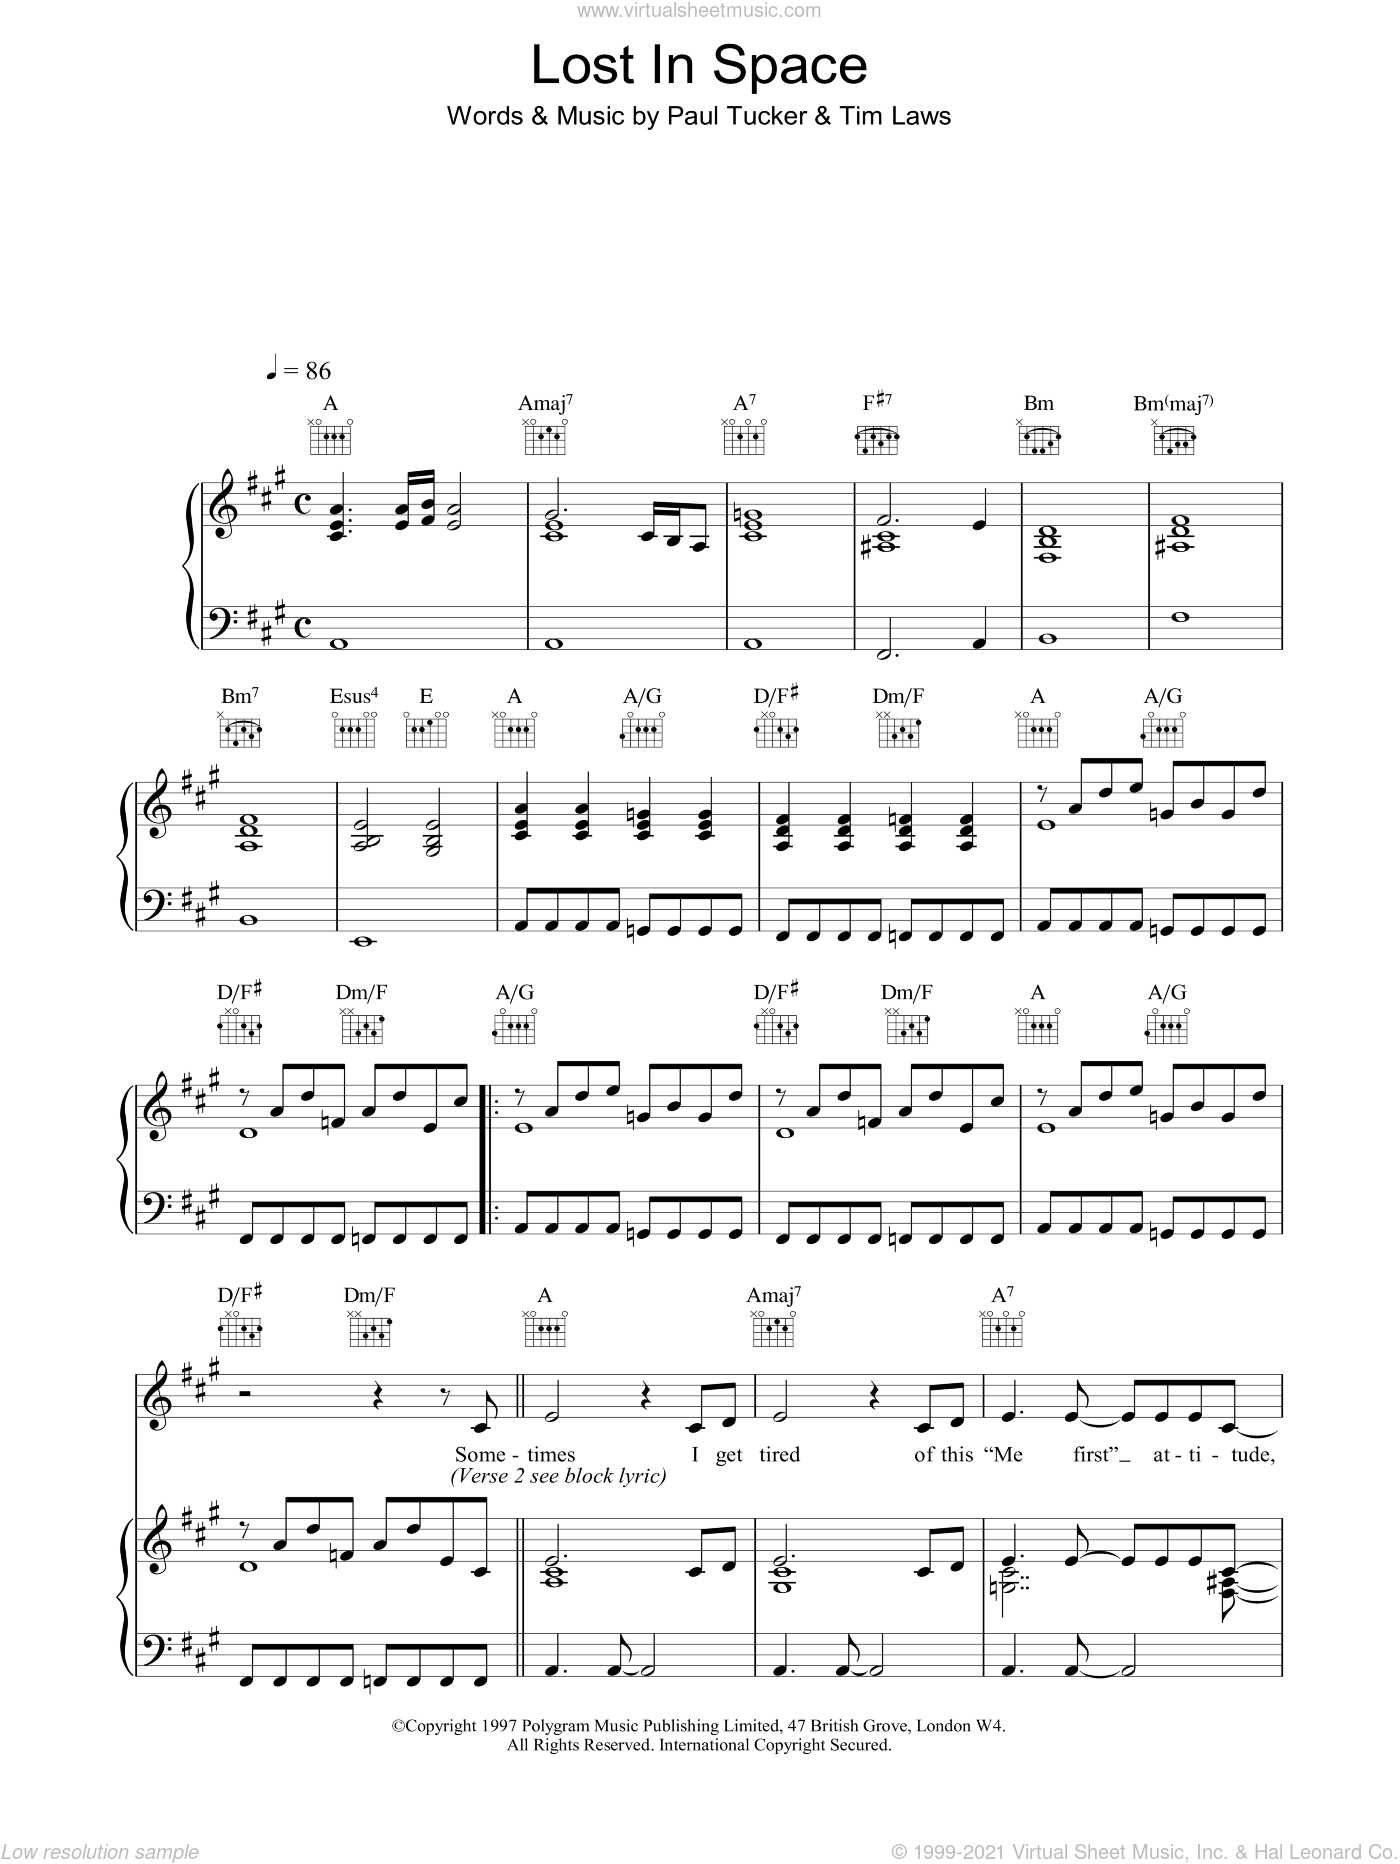 Lost In Space sheet music for voice, piano or guitar by Tim Laws, Lighthouse Family and Paul Tucker. Score Image Preview.